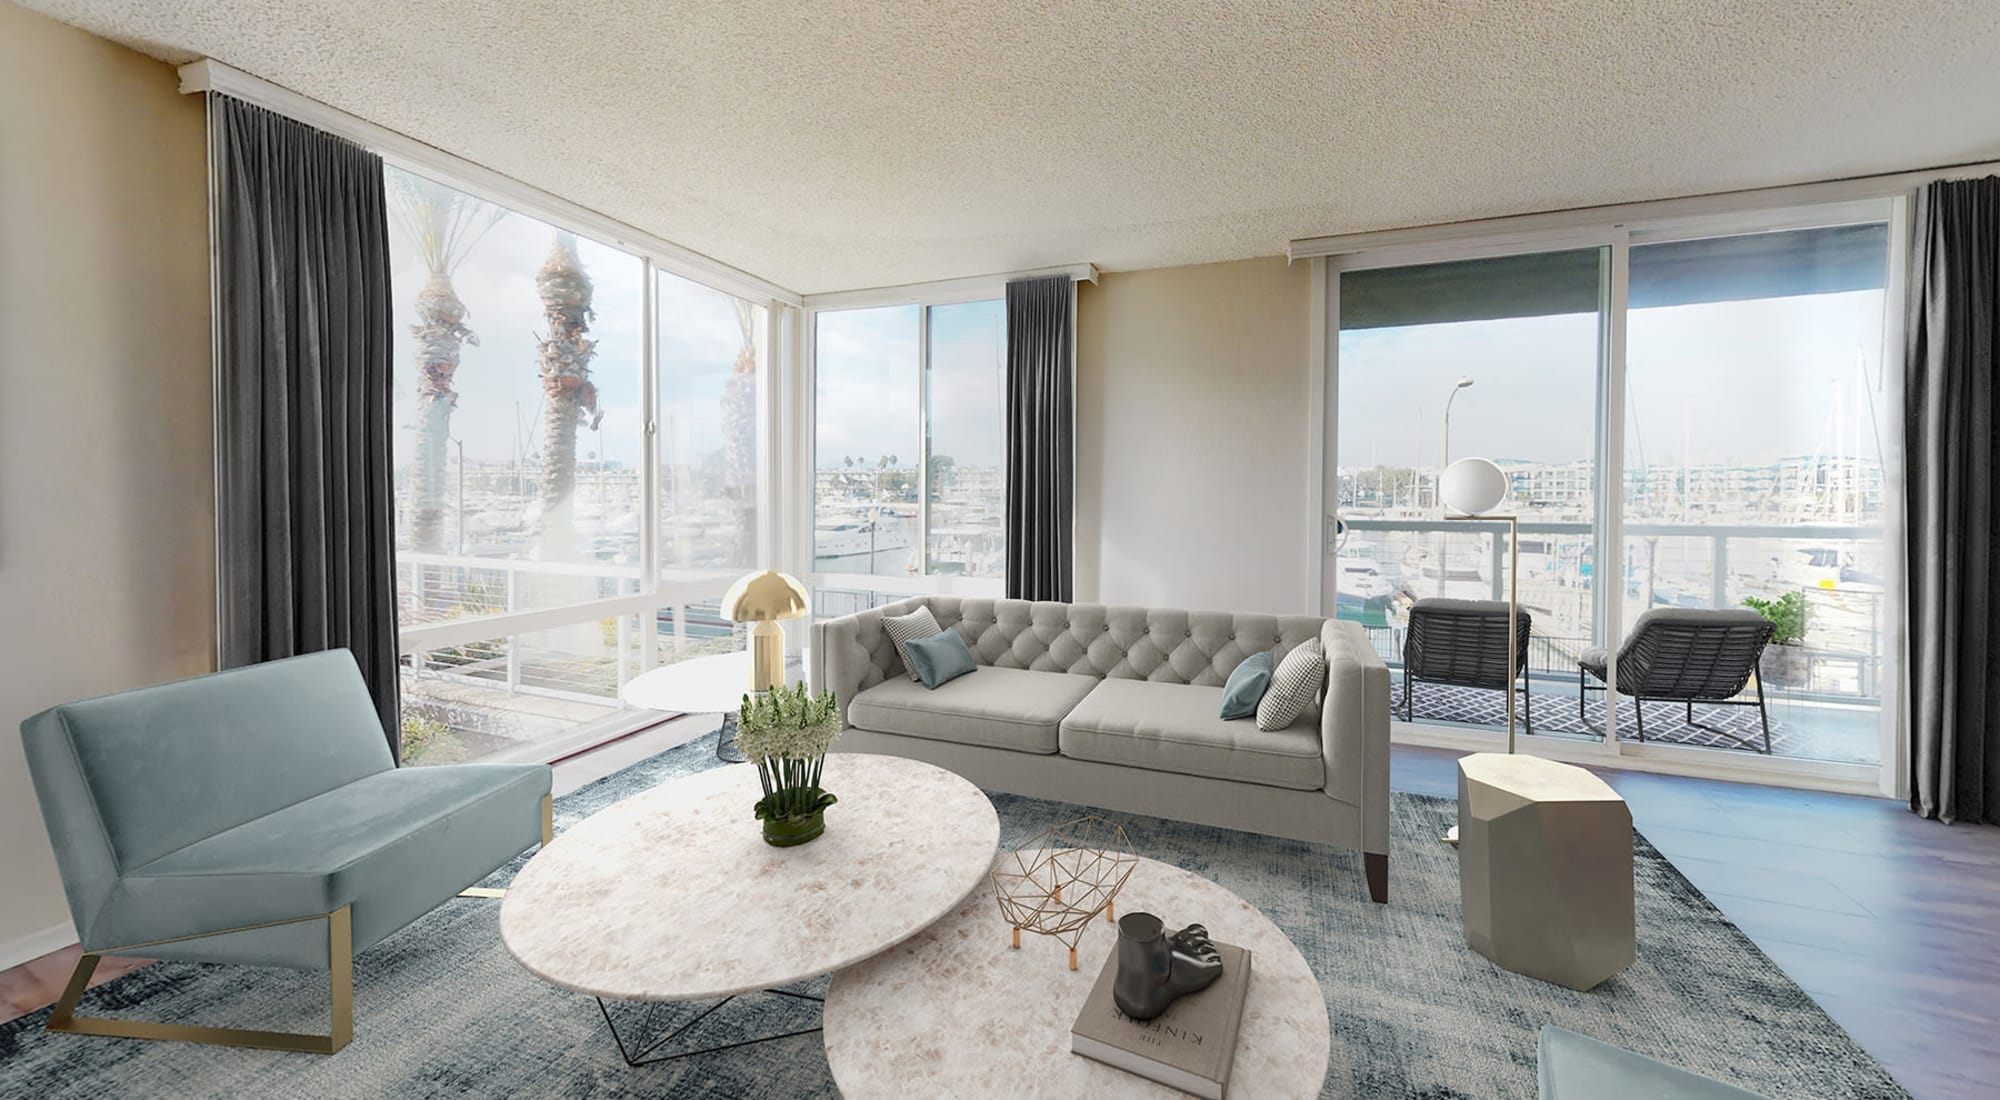 Spacious and well-furnished open-concept apartment home at Waters Edge at Marina Harbor in Marina Del Rey, California